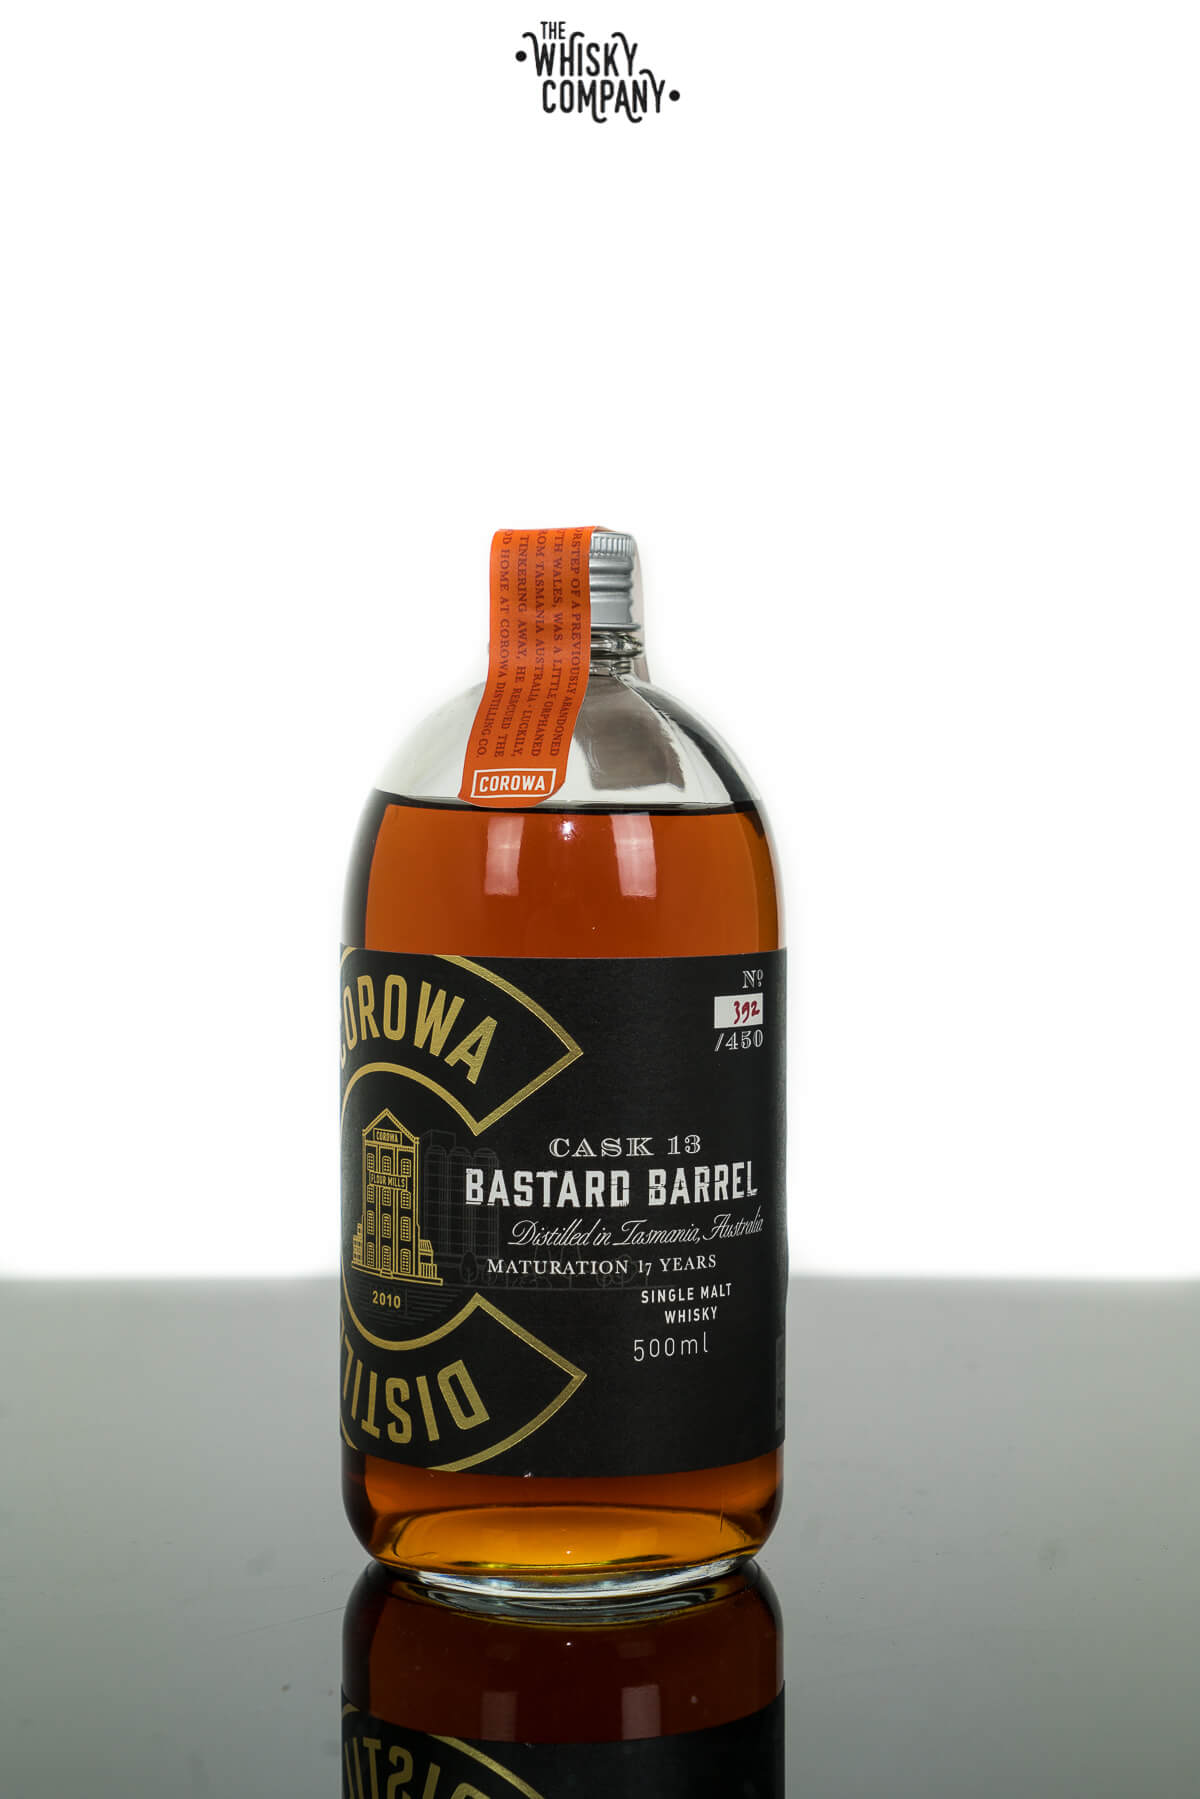 Corowa Distilling Co. Bastard Barrel Australian Single Malt Whisky (500ml)